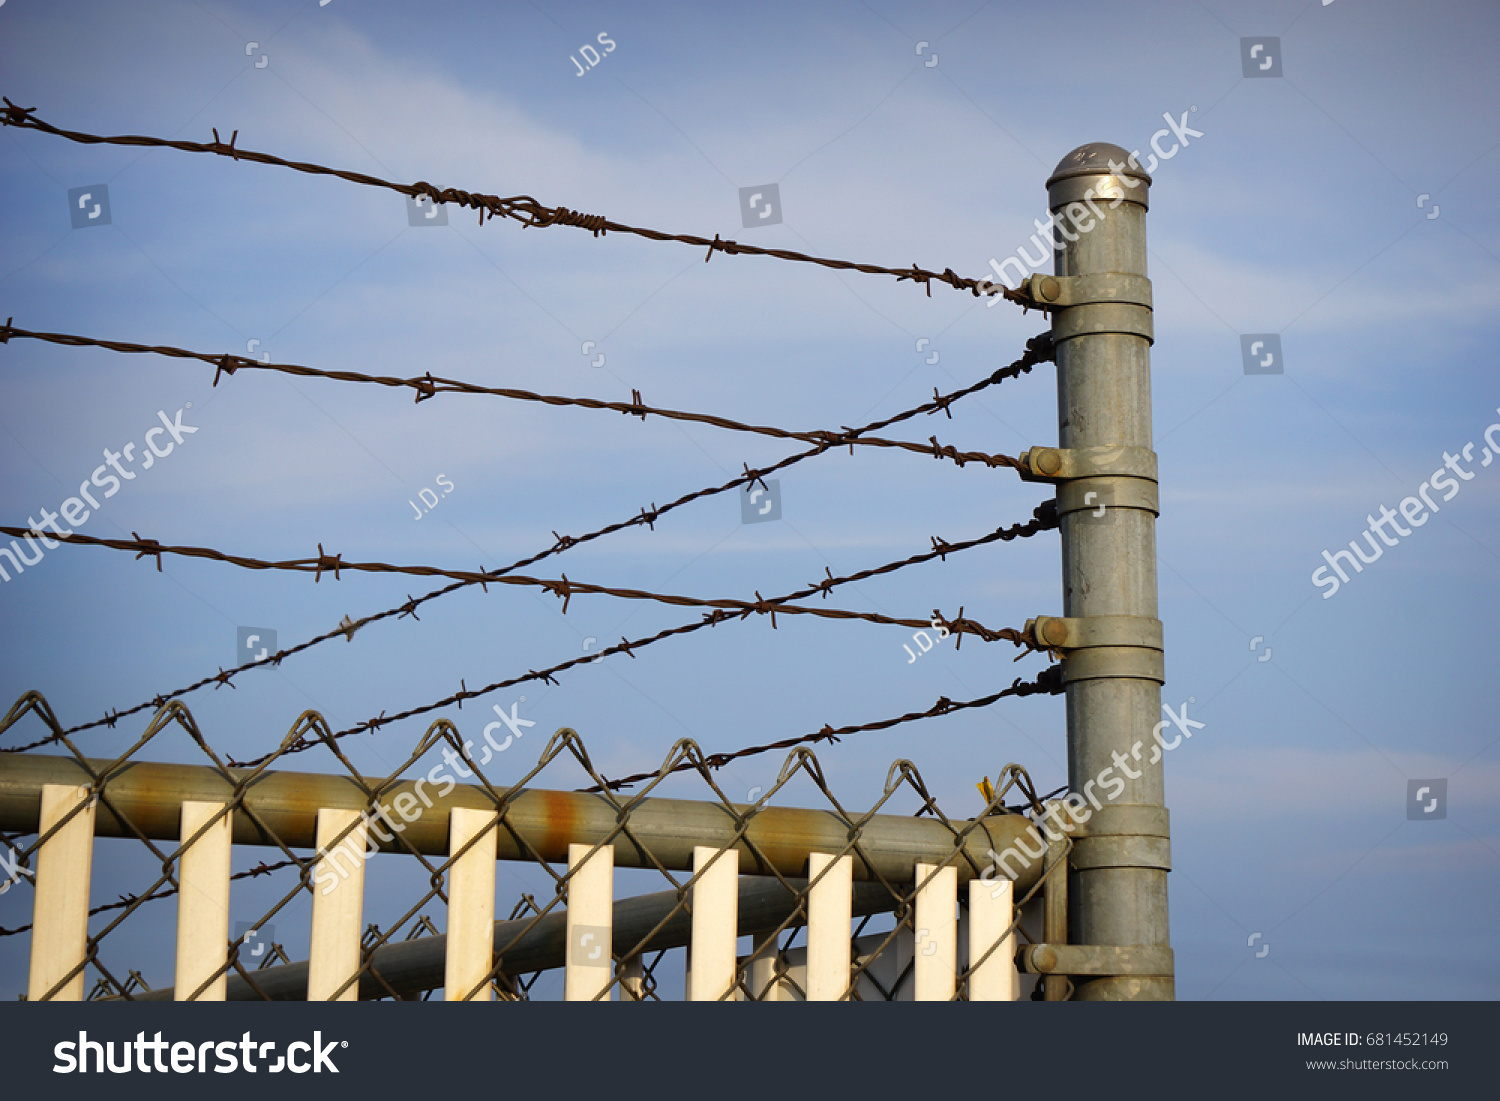 Barbed Wire Fence Security Stock Photo 681452149 - Shutterstock